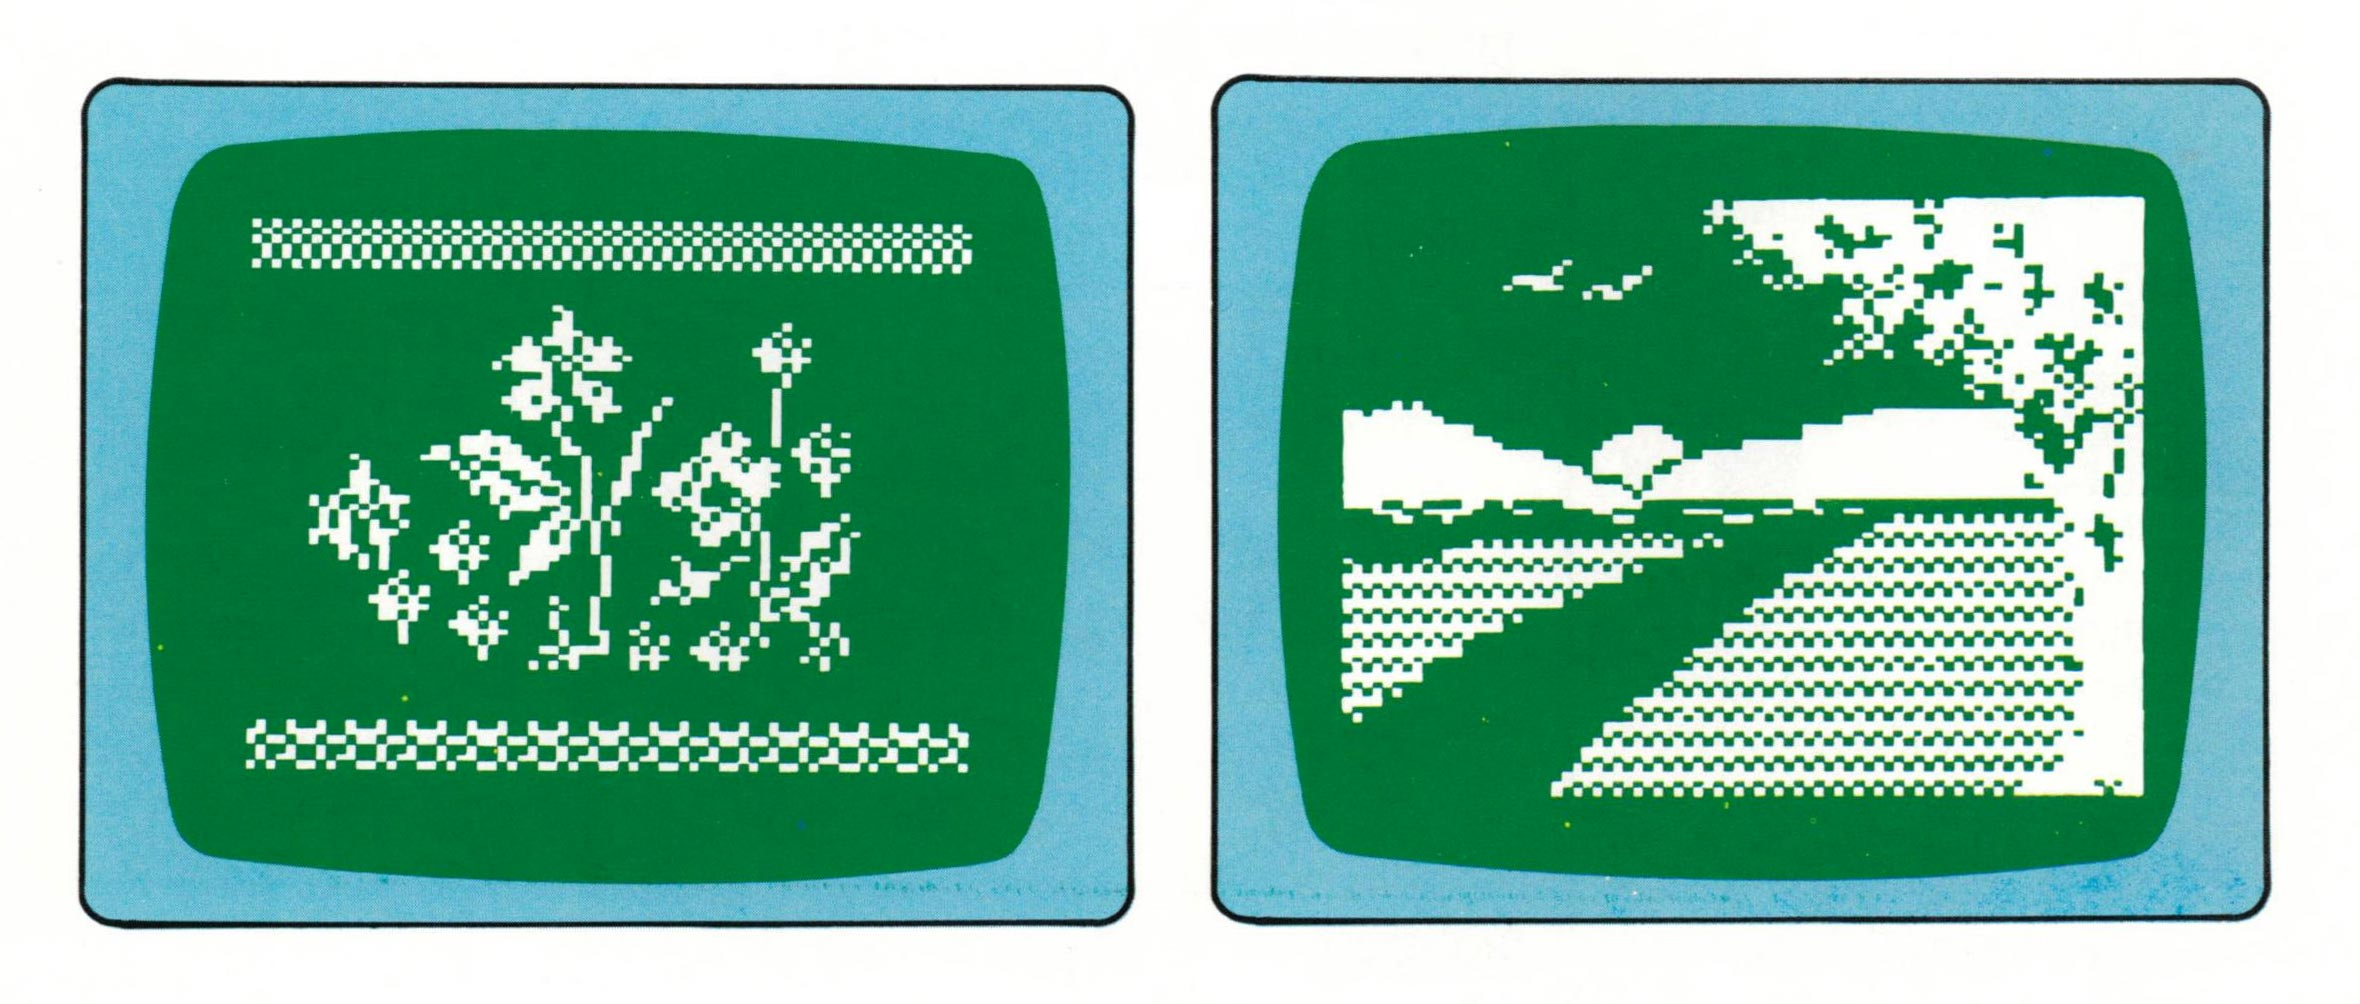 Graphic sample for Intellivision, a home video game by Mattel